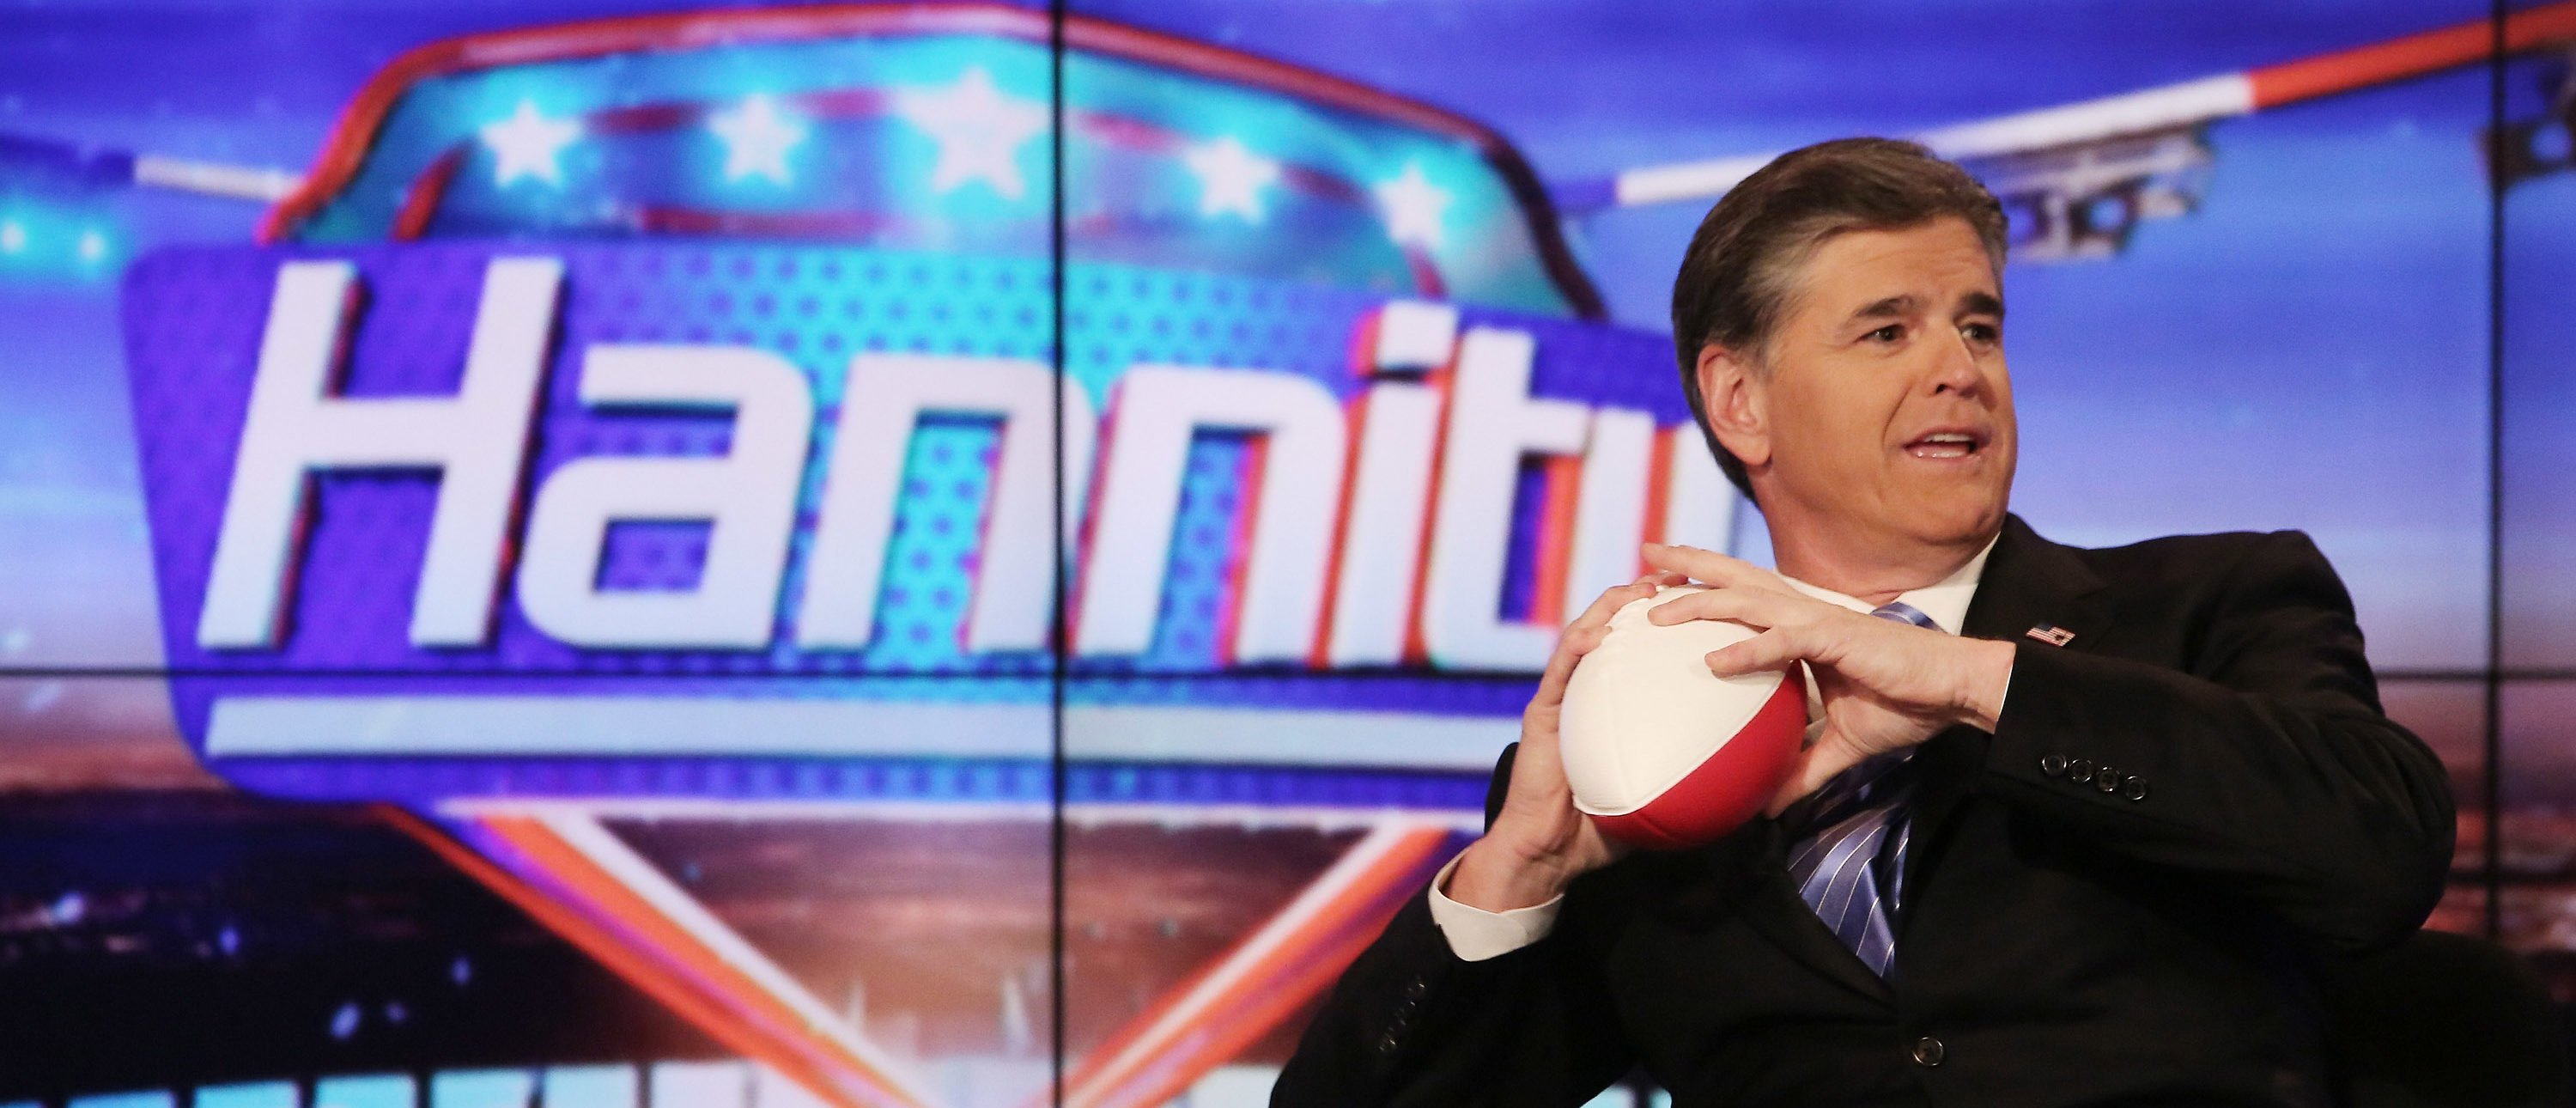 """Host Sean Hannity on set of FOX's """"Hannity With Sean Hannity"""" at FOX Studios on April 21, 2014 in New York City. (Photo by Paul Zimmerman/Getty Images)"""